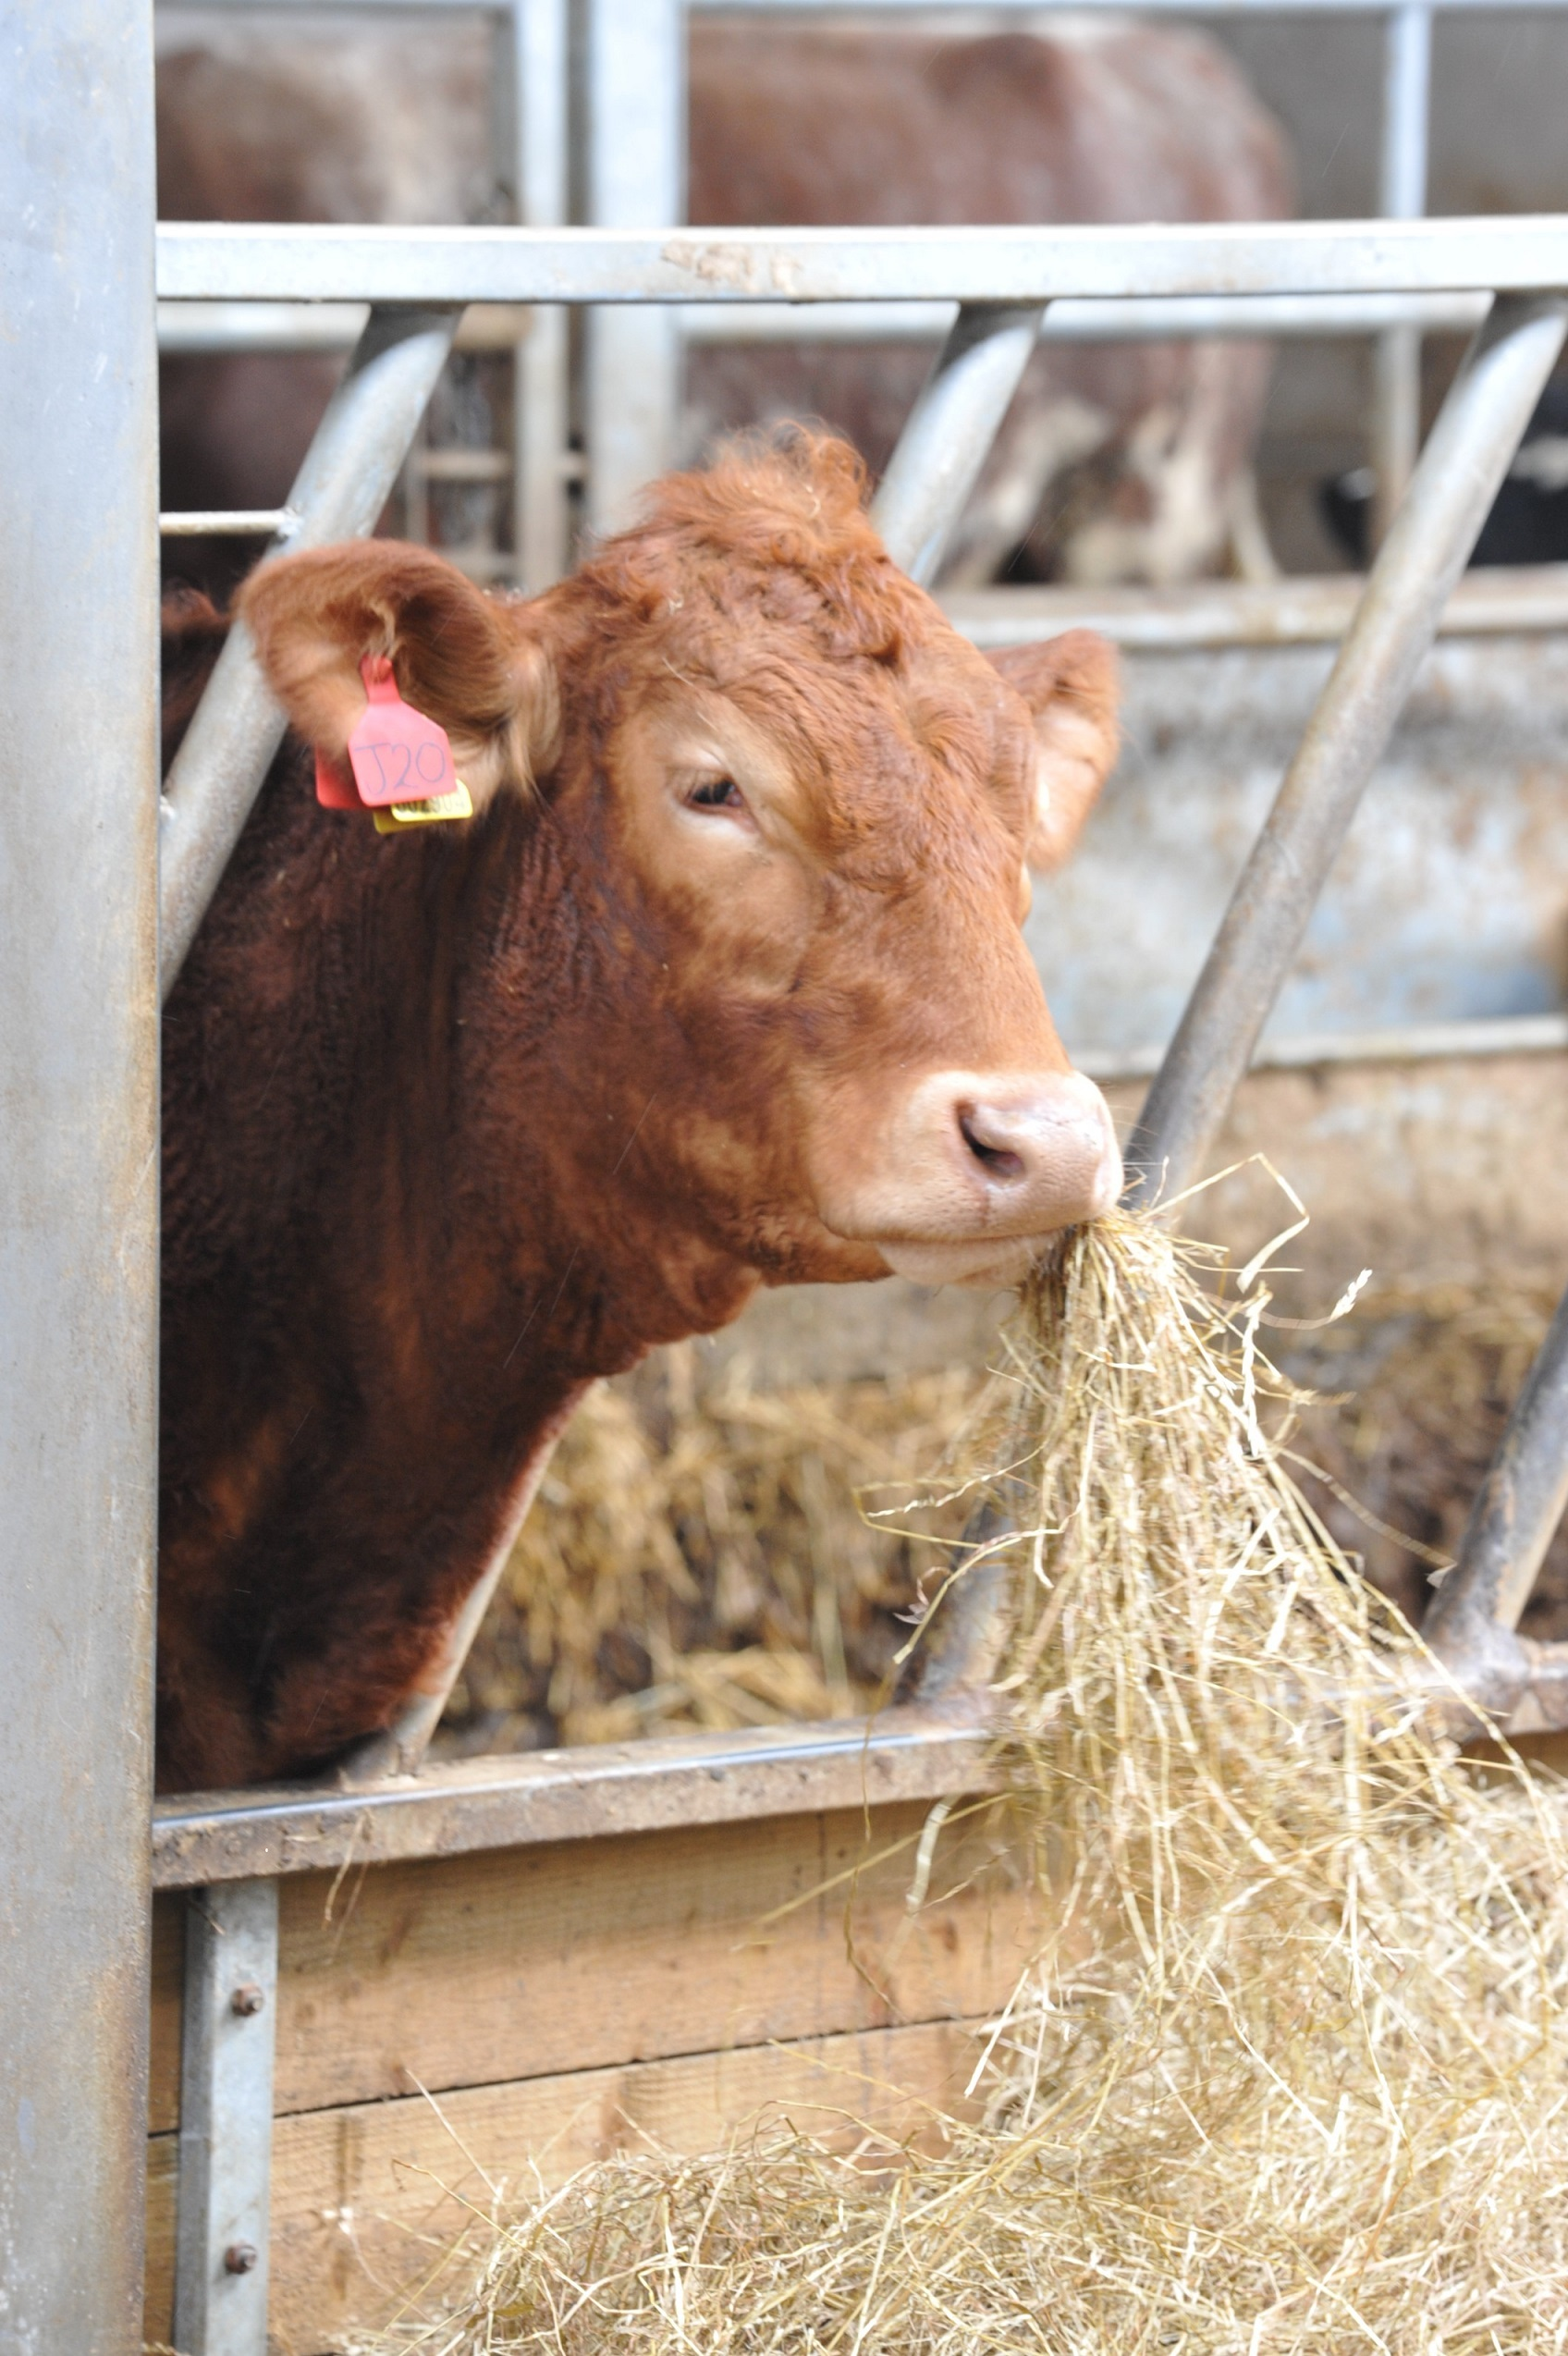 Turnout is weeks behind schedule on many Welsh farms PICTURE: Debbie James